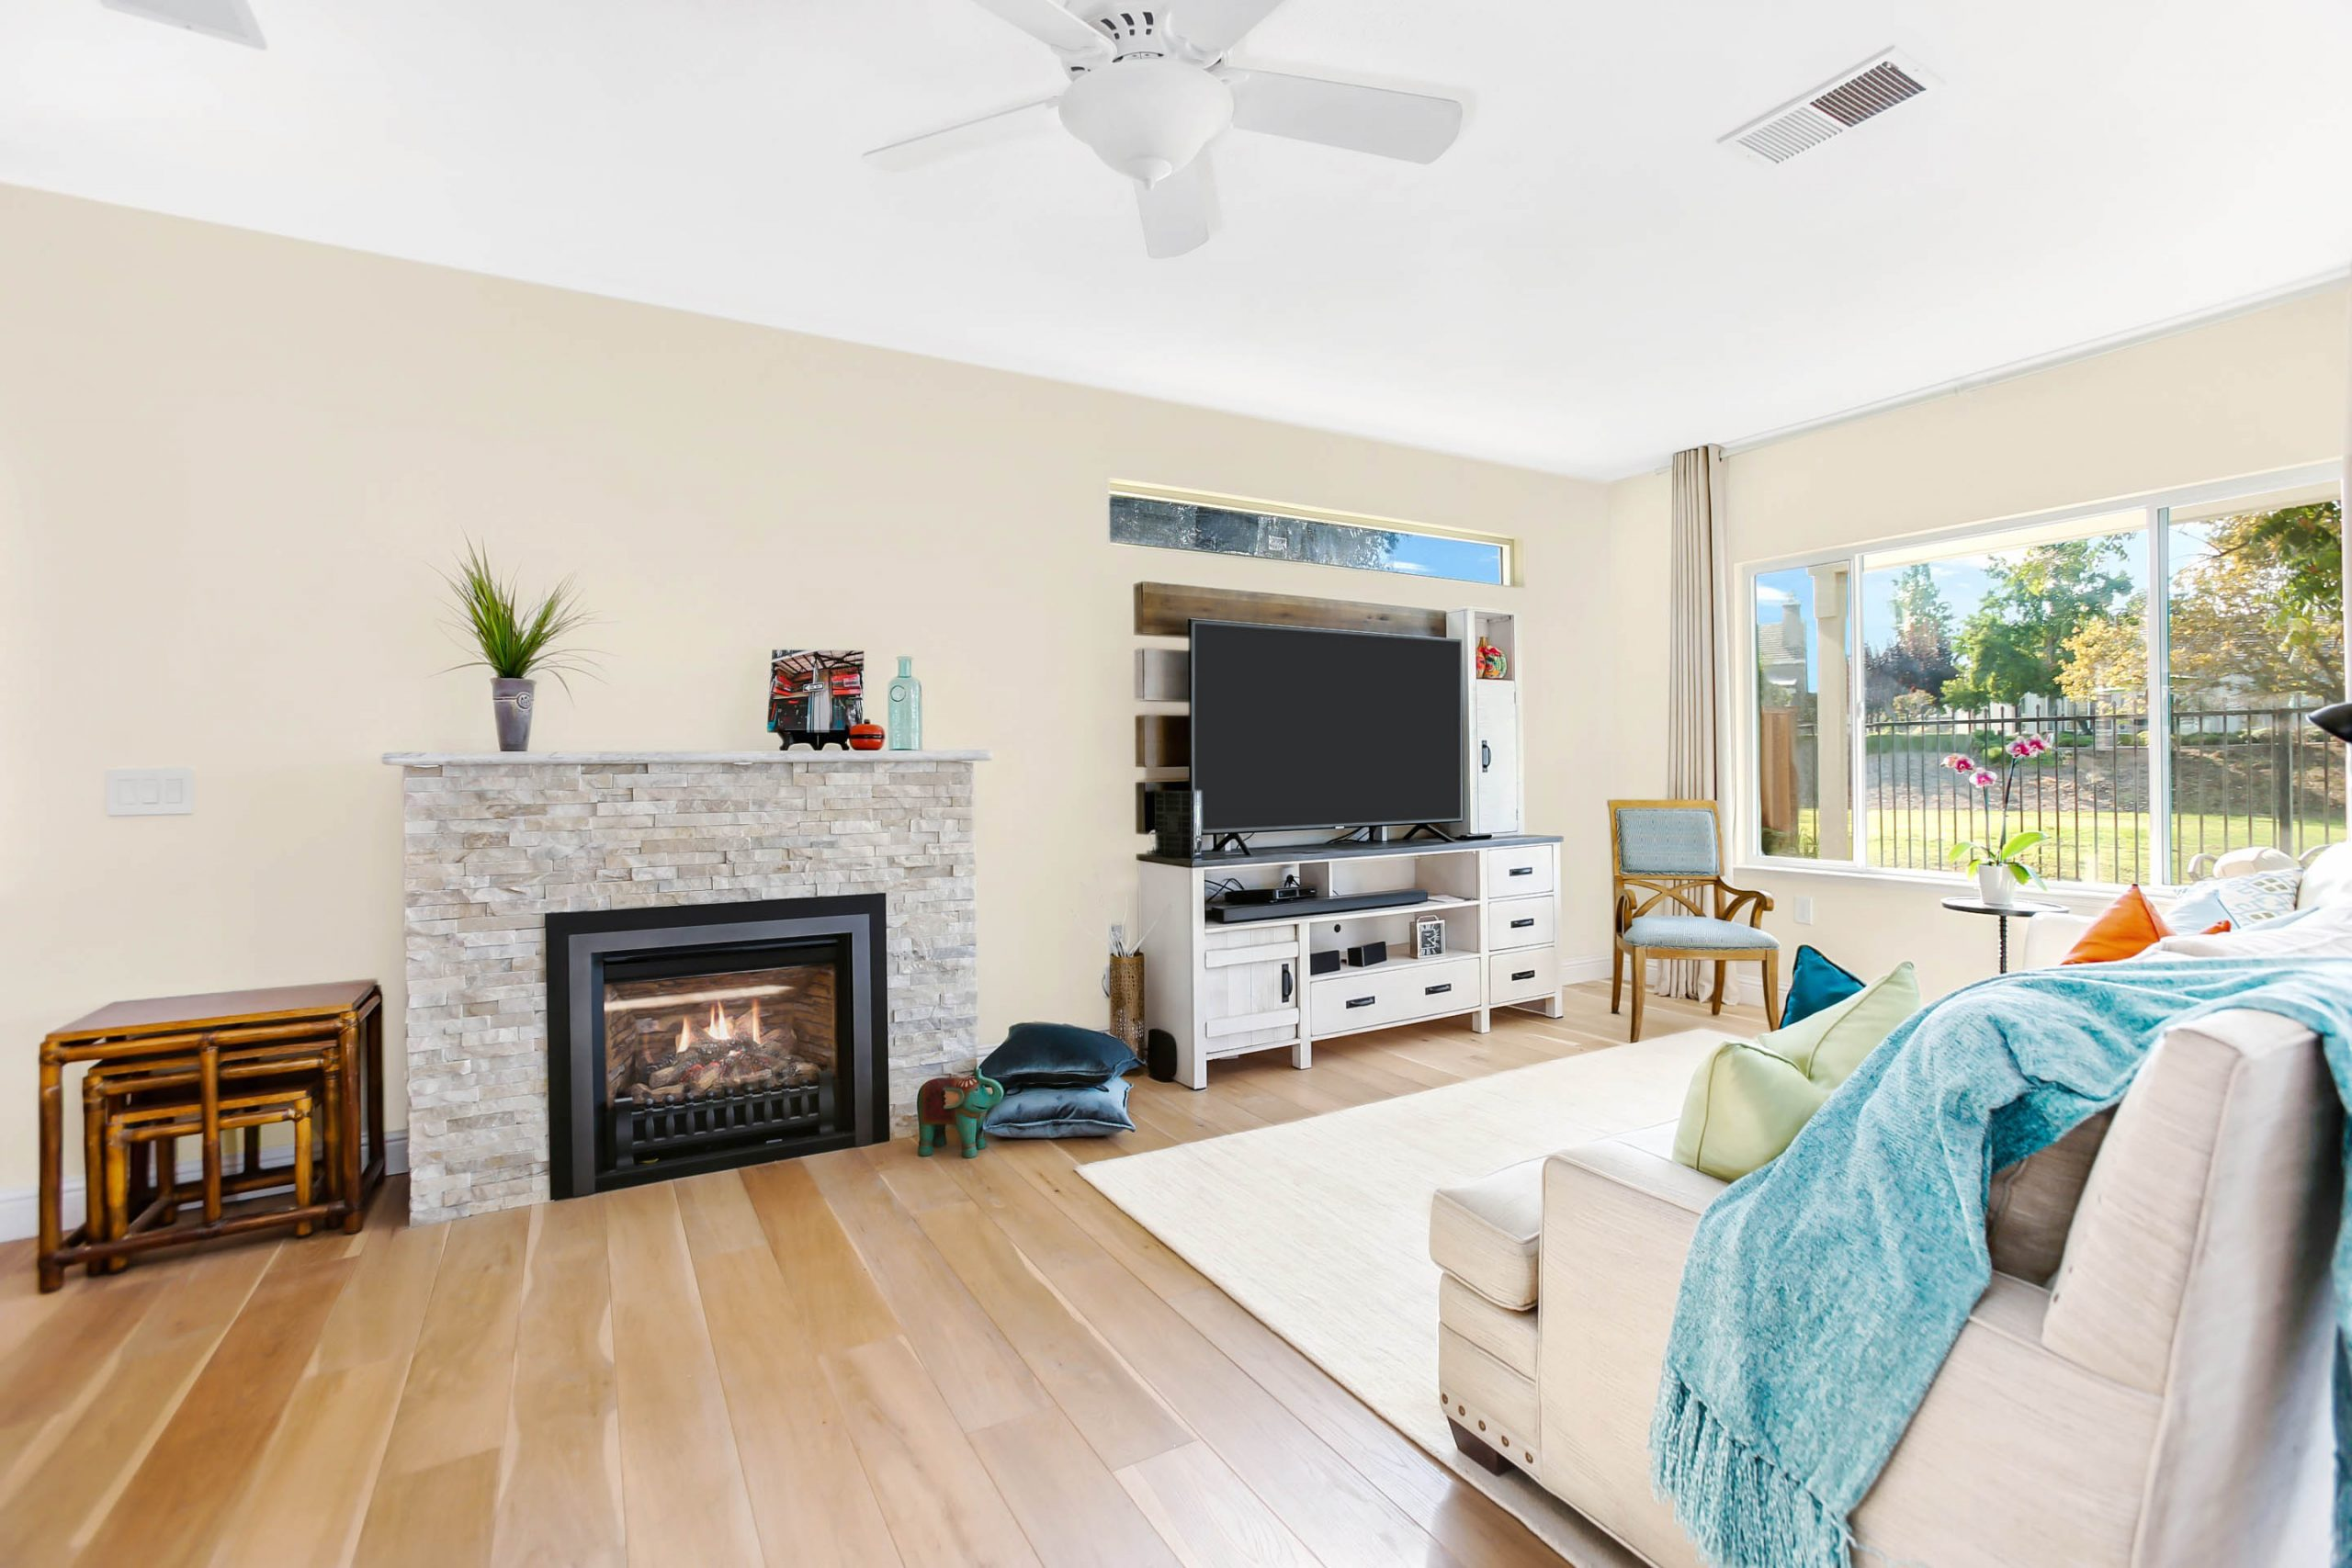 It only took a 7-foot bump out to the existing family room to give these homeowners exactly what they wanted.